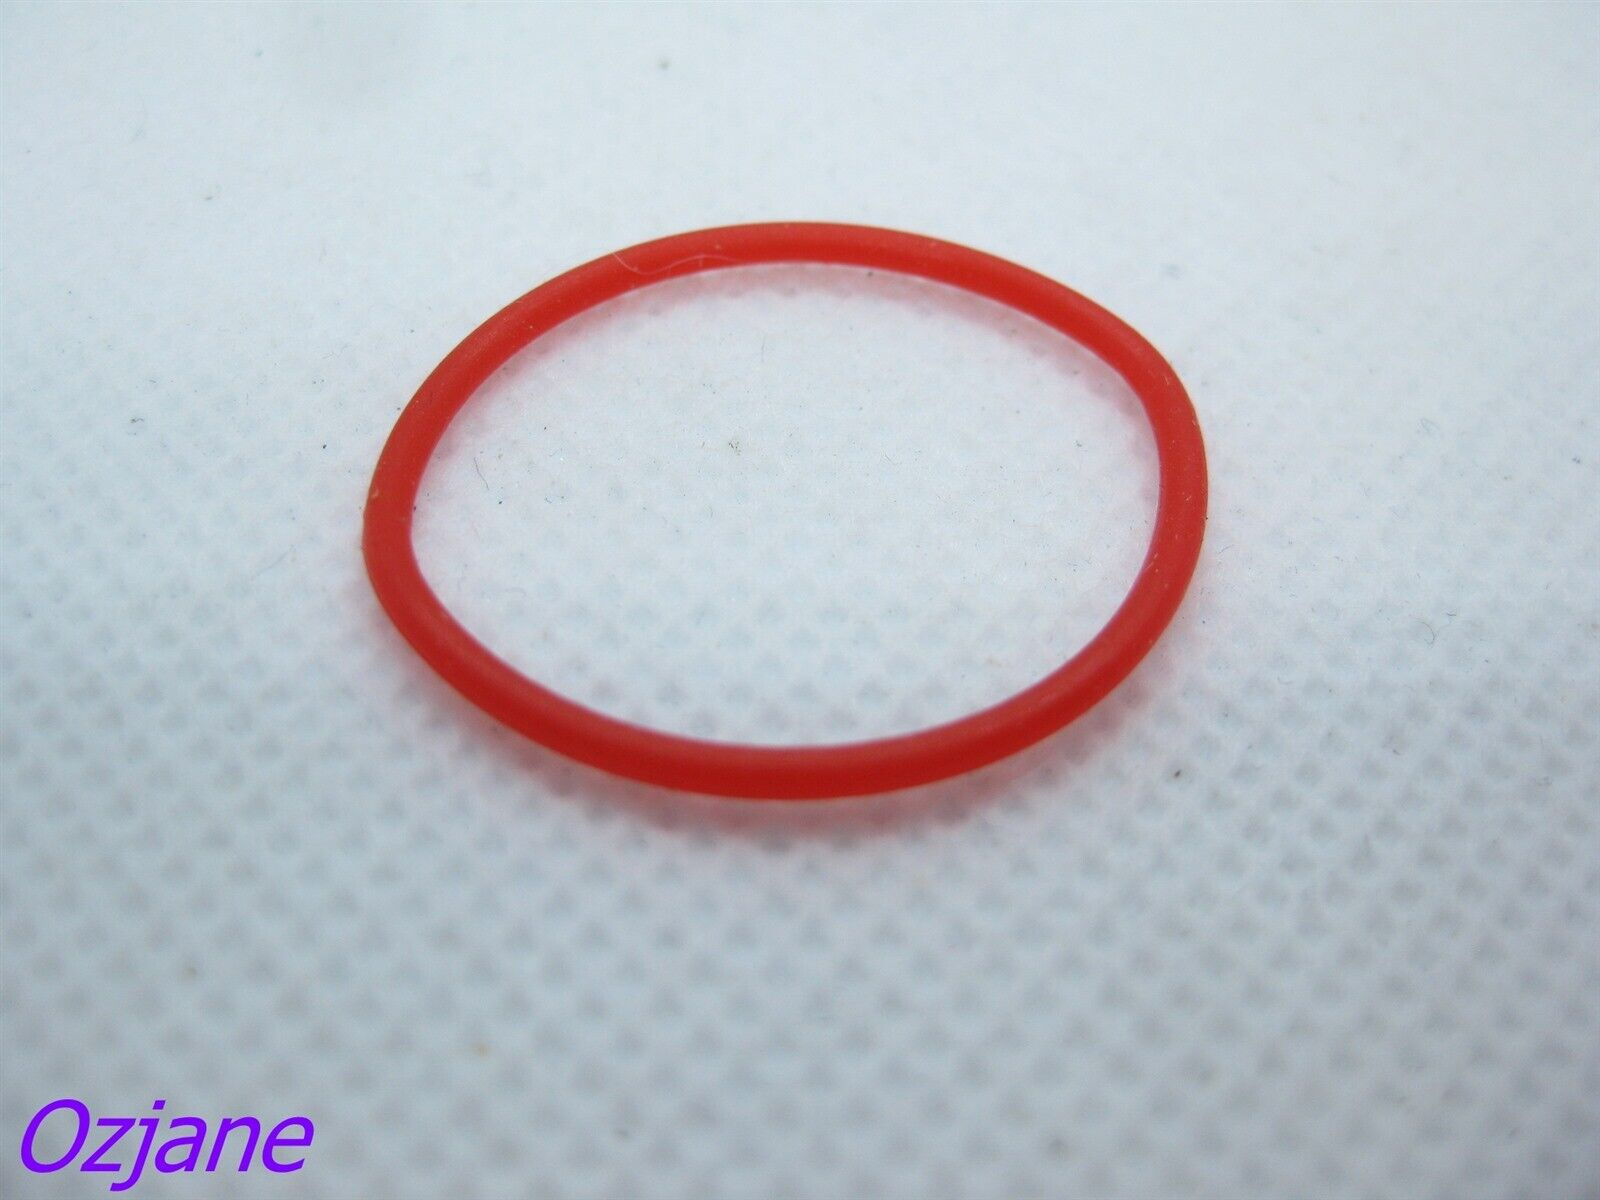 LEGO PART ELASTIC RUBBER BAND BLUE LARGE ROUND CROSS SECT PART NO. X89